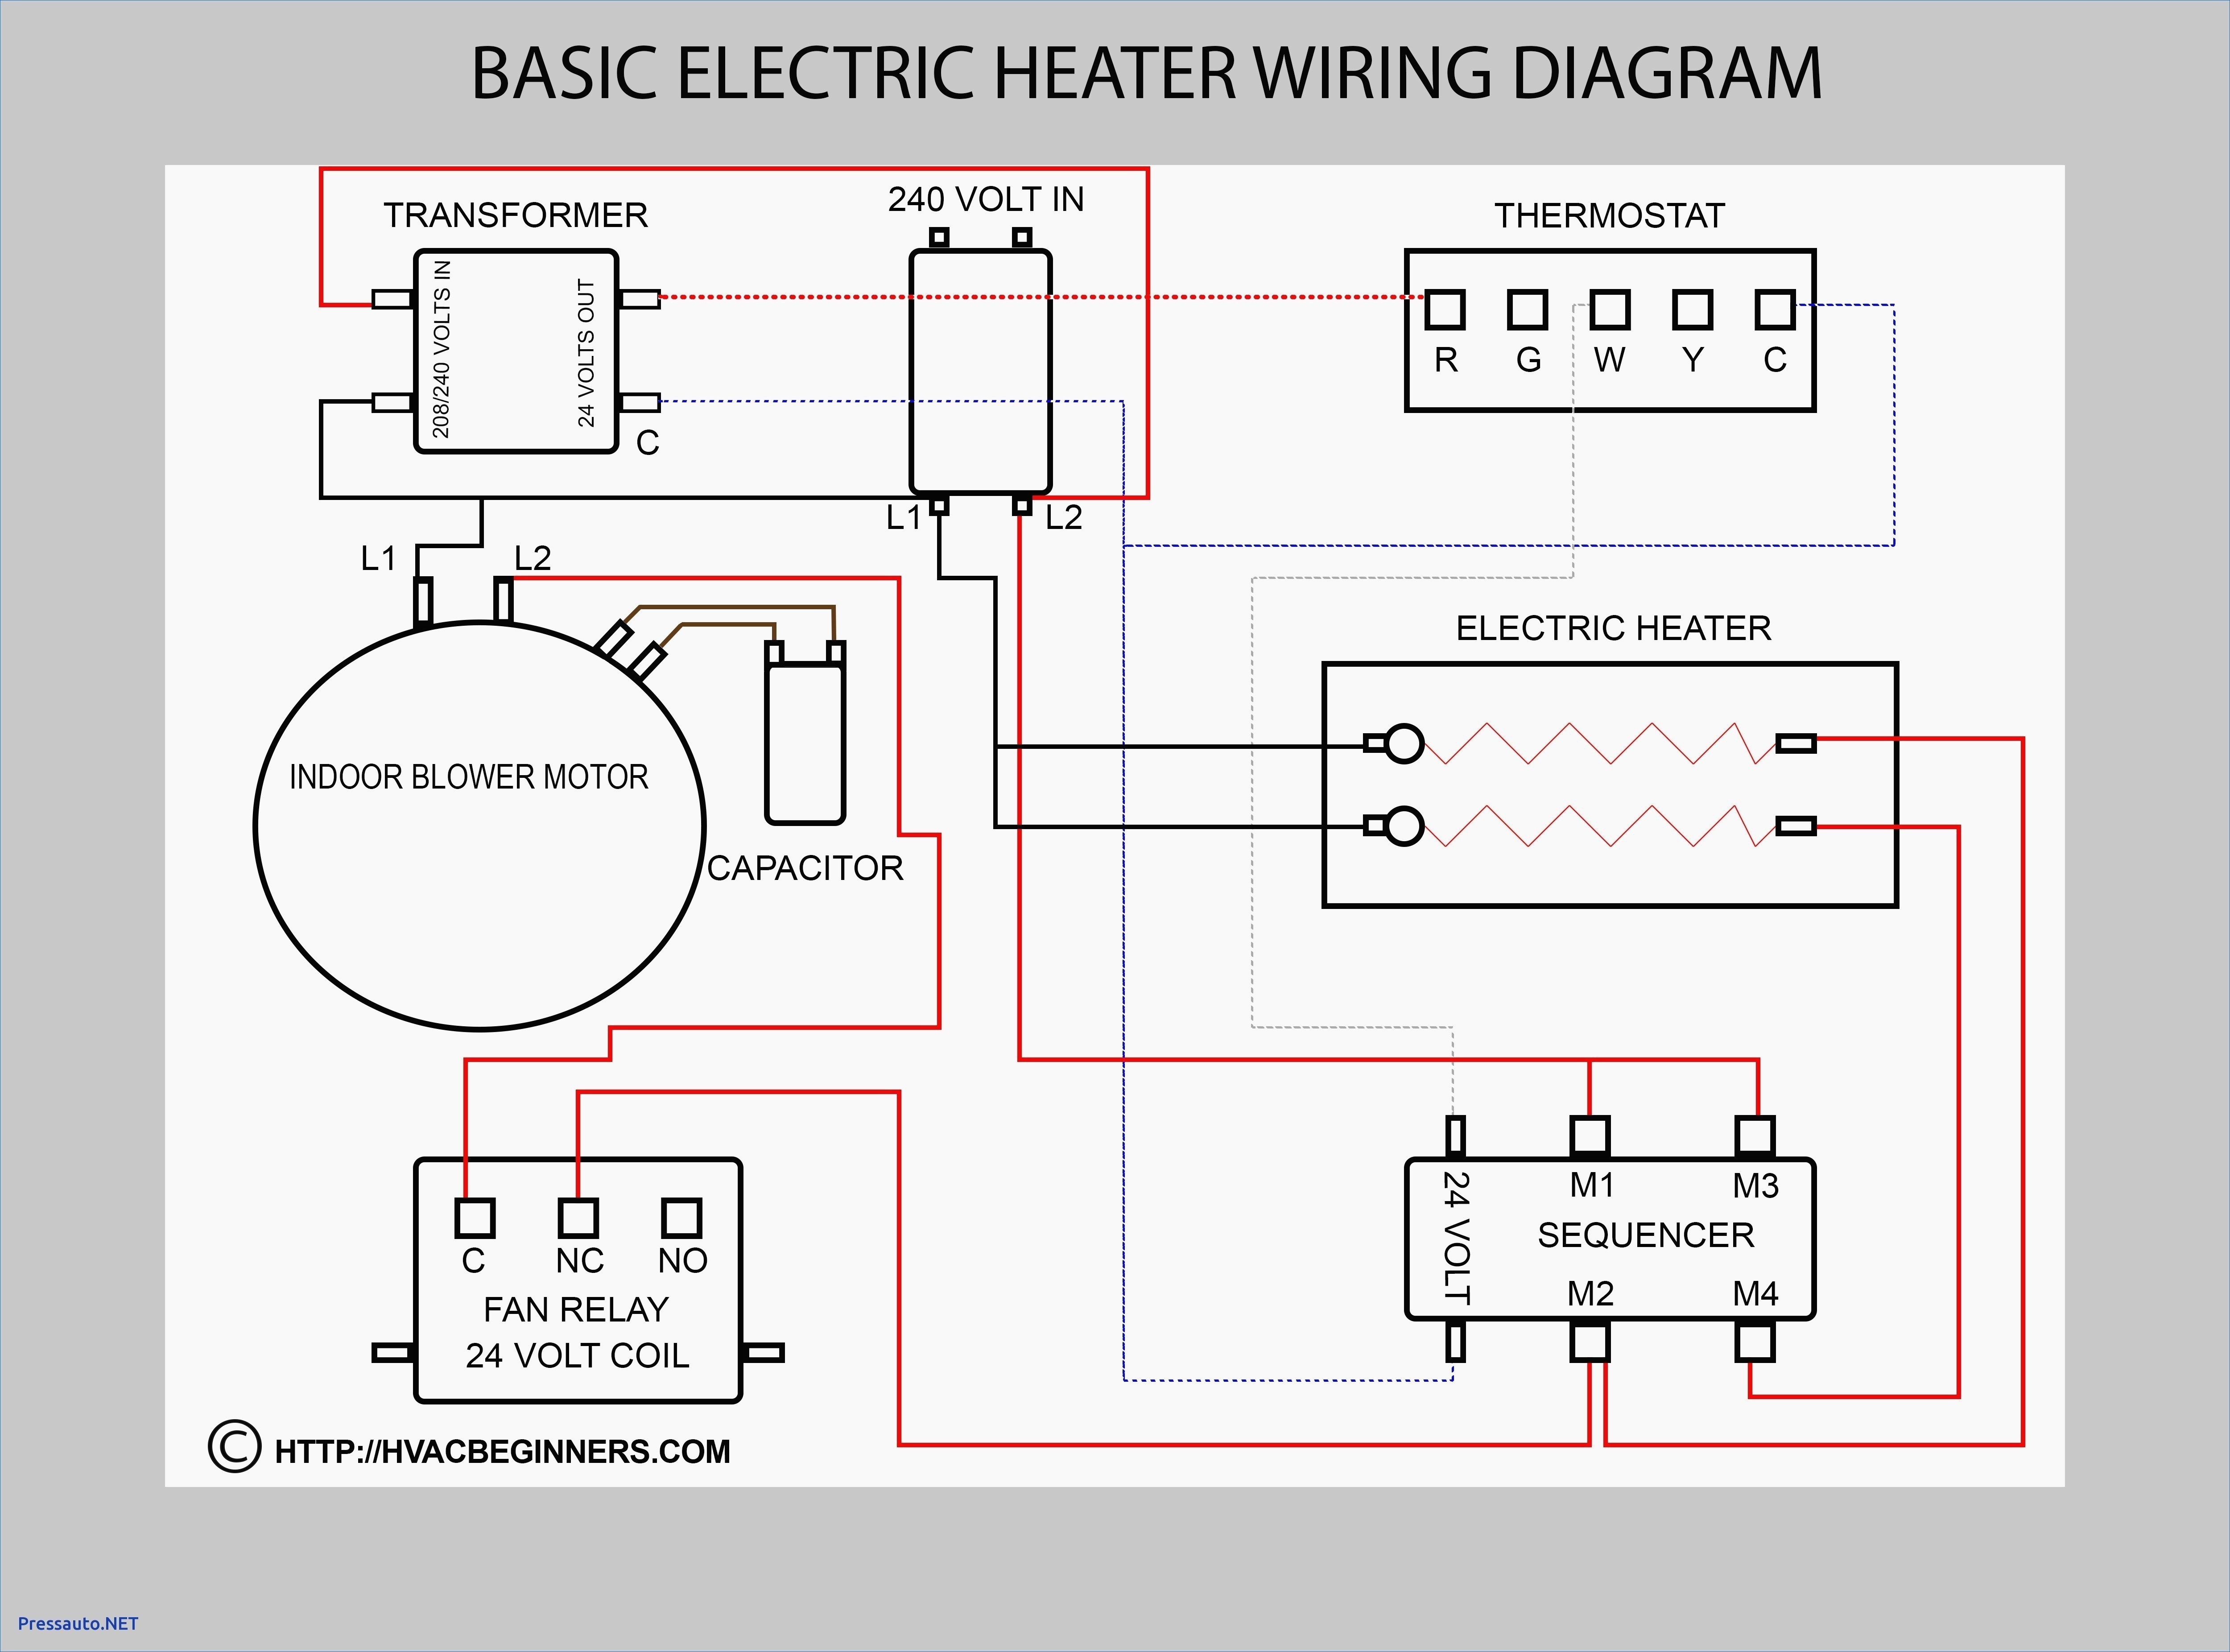 Armstrong Furnace Parts Diagram Home Ac Parts Diagram Wiring Diagram Strategy Design Plan • Of Armstrong Furnace Parts Diagram